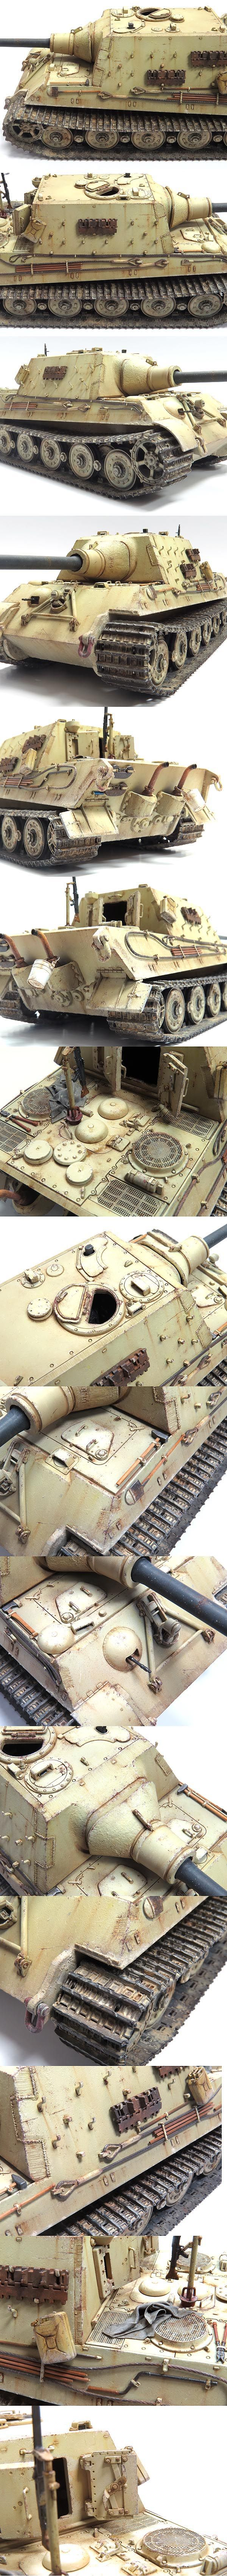 938 best German armor images on Pinterest   Diorama, Dioramas and ...